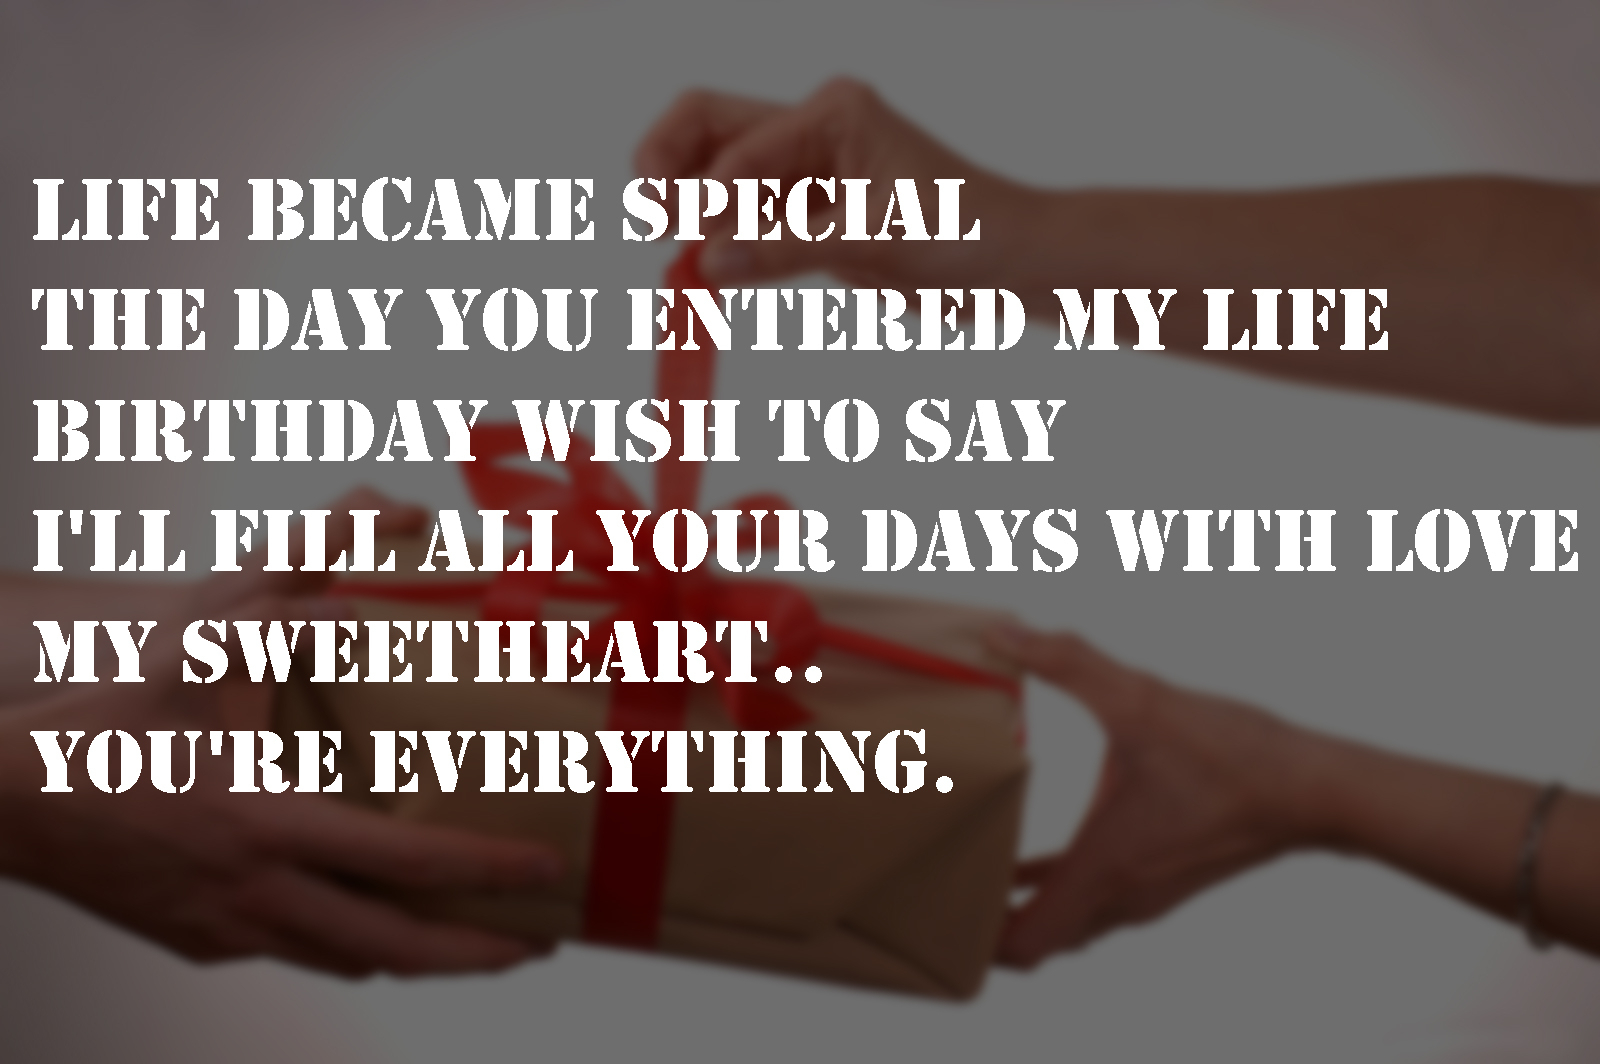 birthday message for your love ; birthday-quotes-for-your-love-special-birthday-wishes-messages-and-greetings